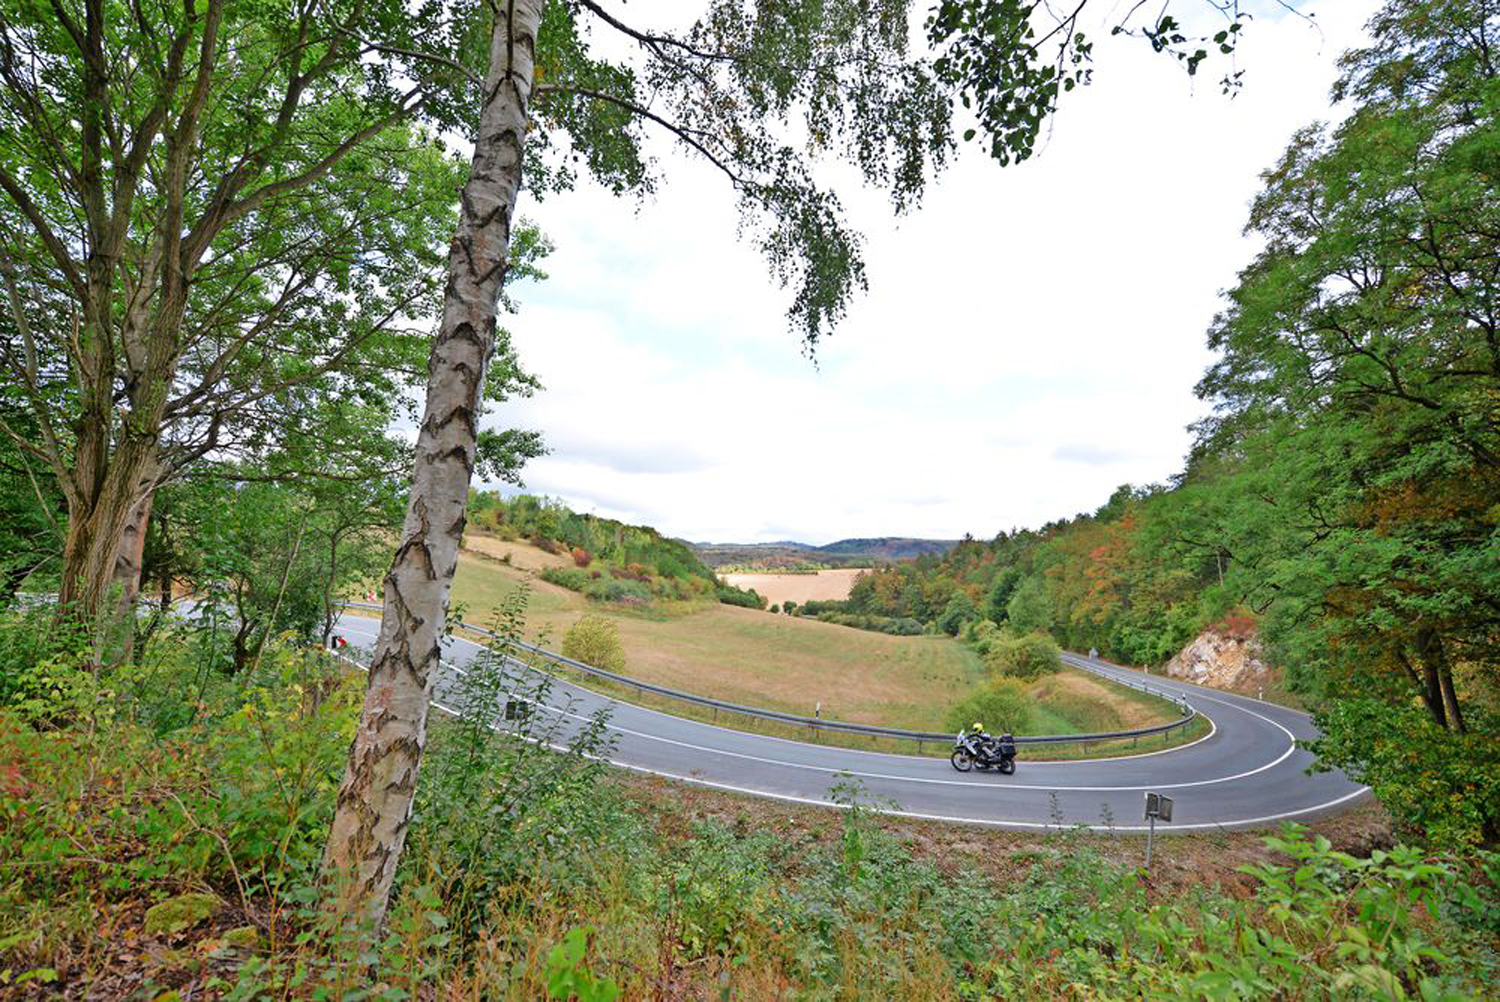 The Harz region has so much to offer you could easily spend weeks exploring